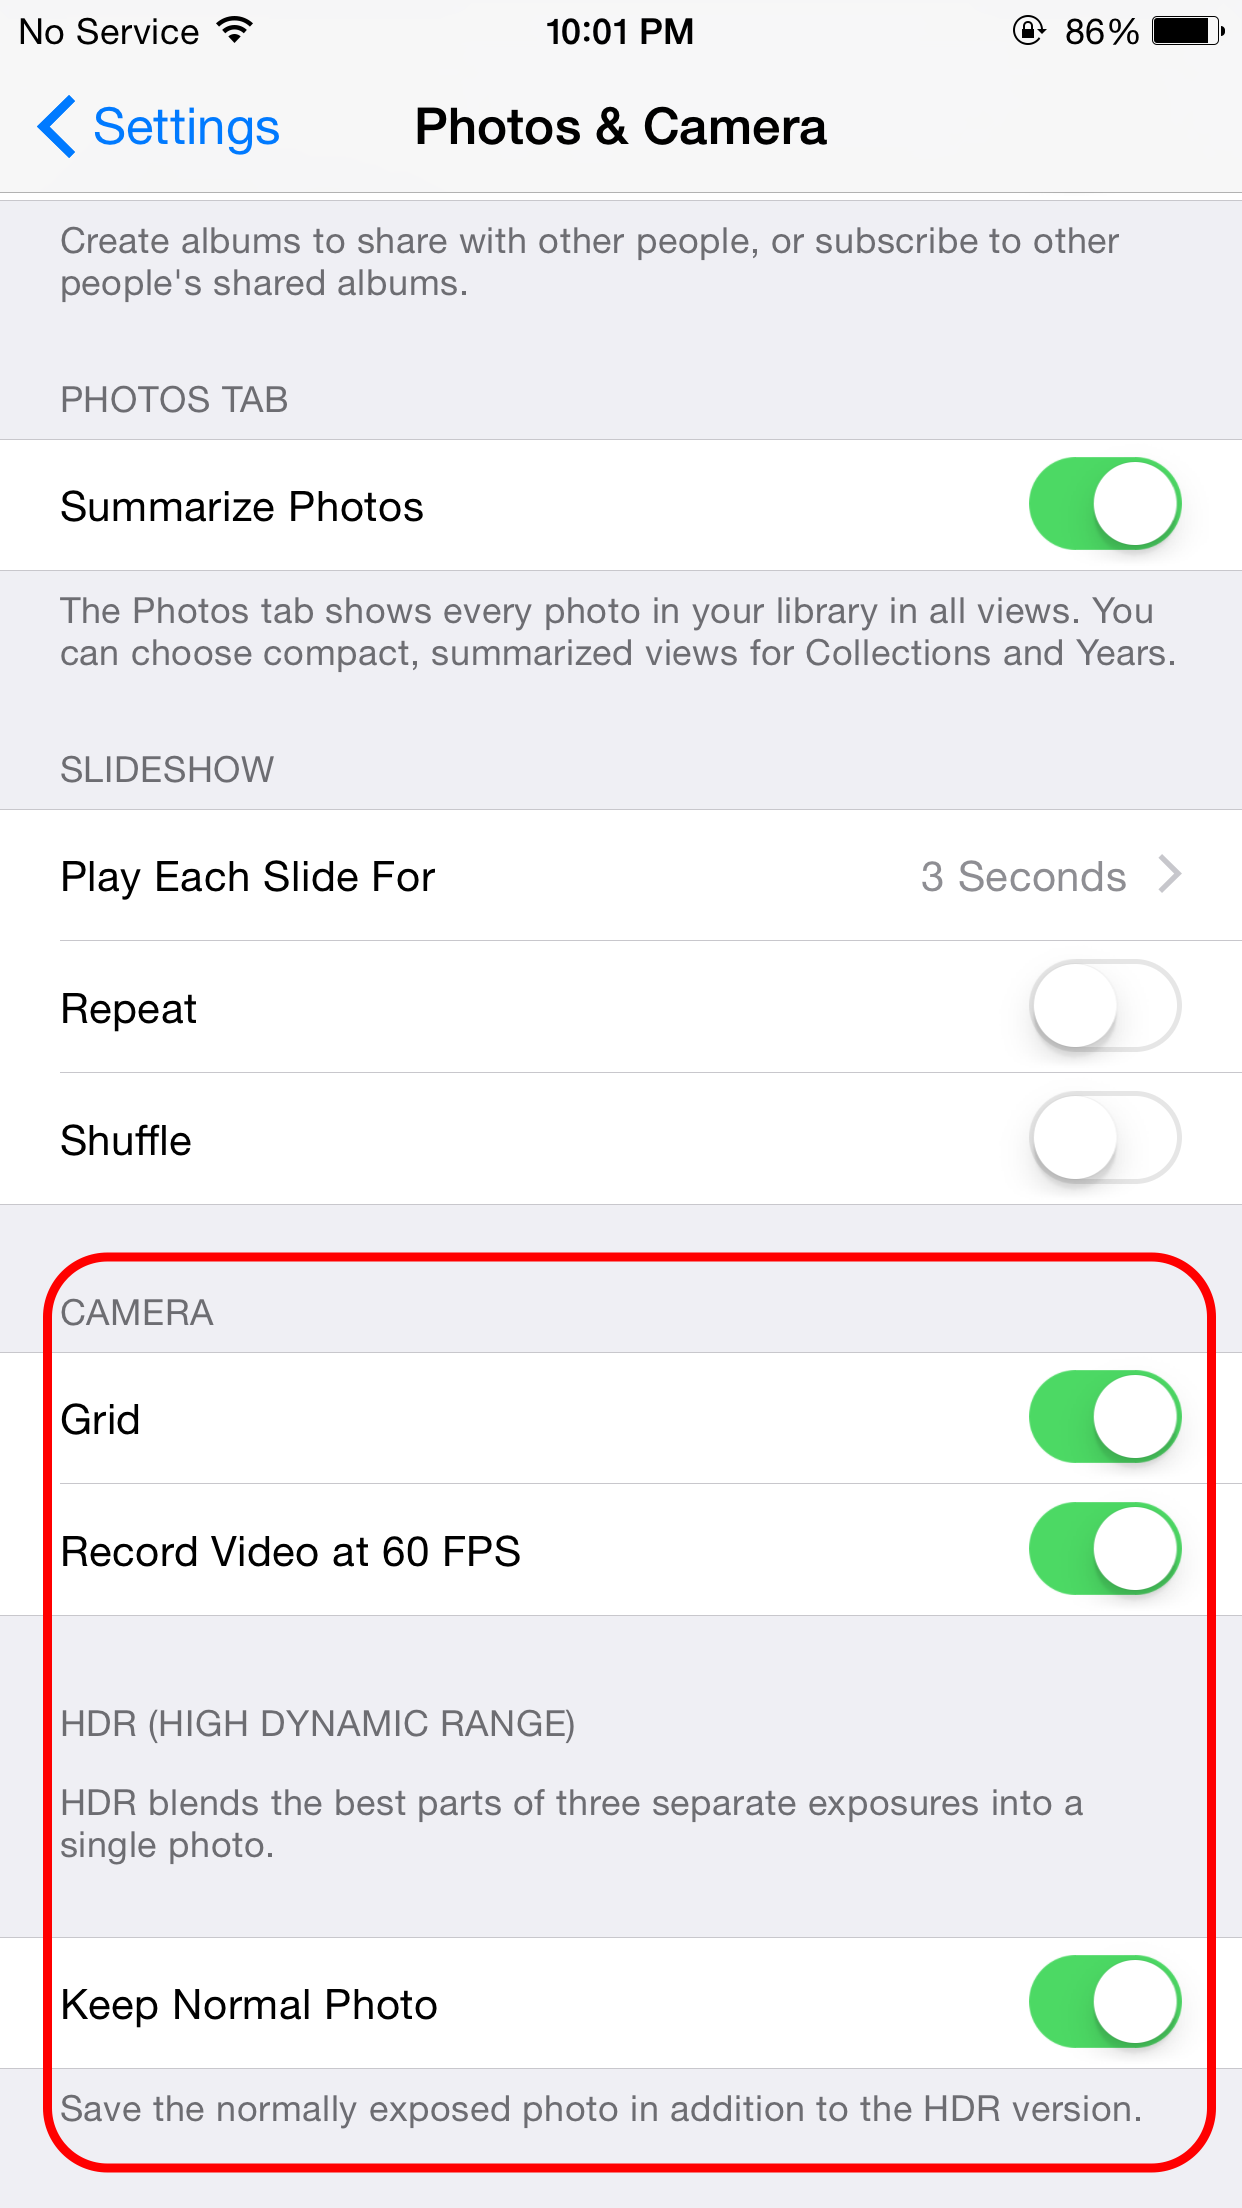 Camera settings in the Setting app